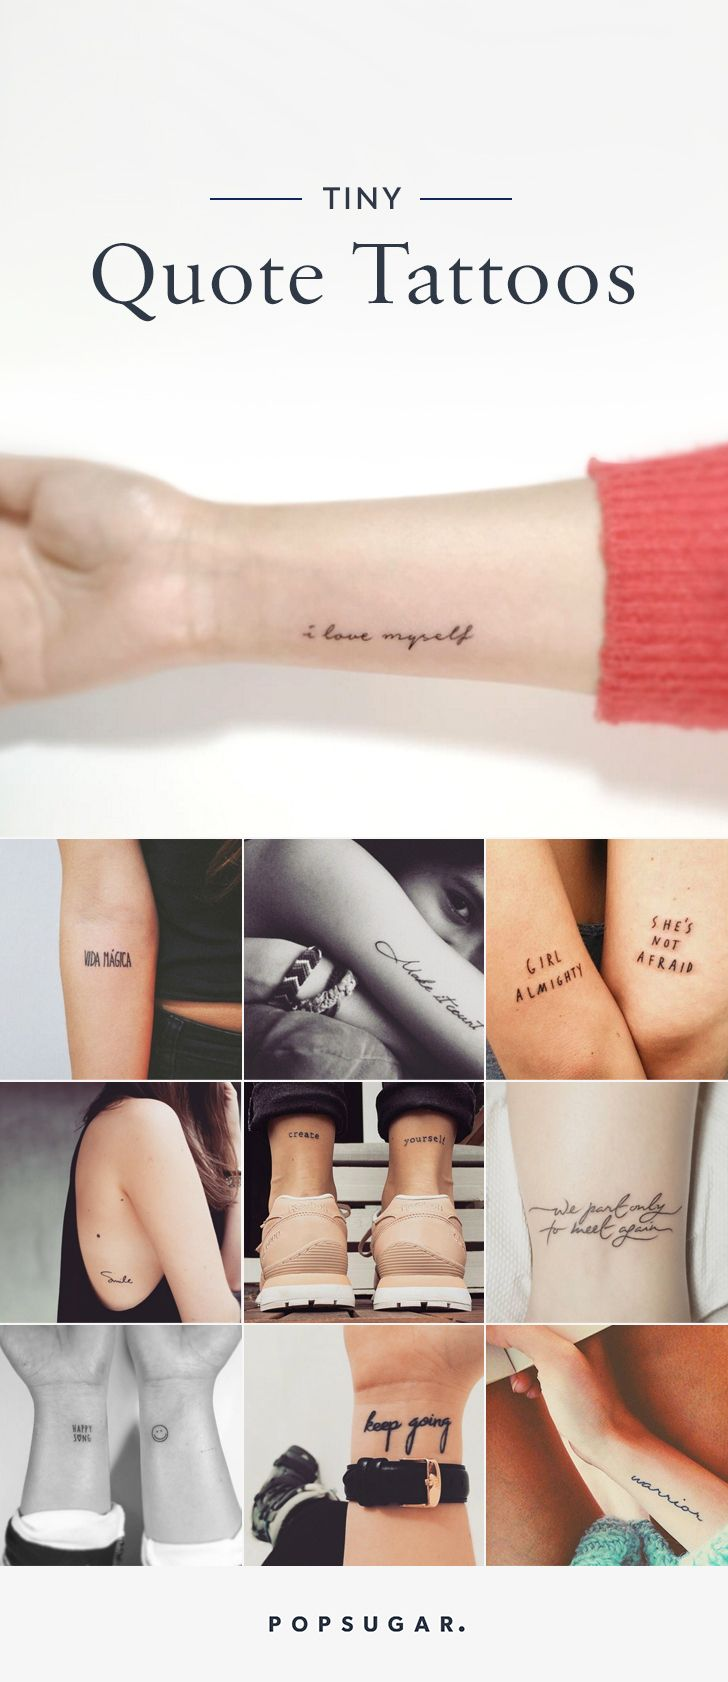 70249e339 Inspiring words can motivate you — and there's no better way to remind  yourself daily than with tattoos that will stand the test of time.